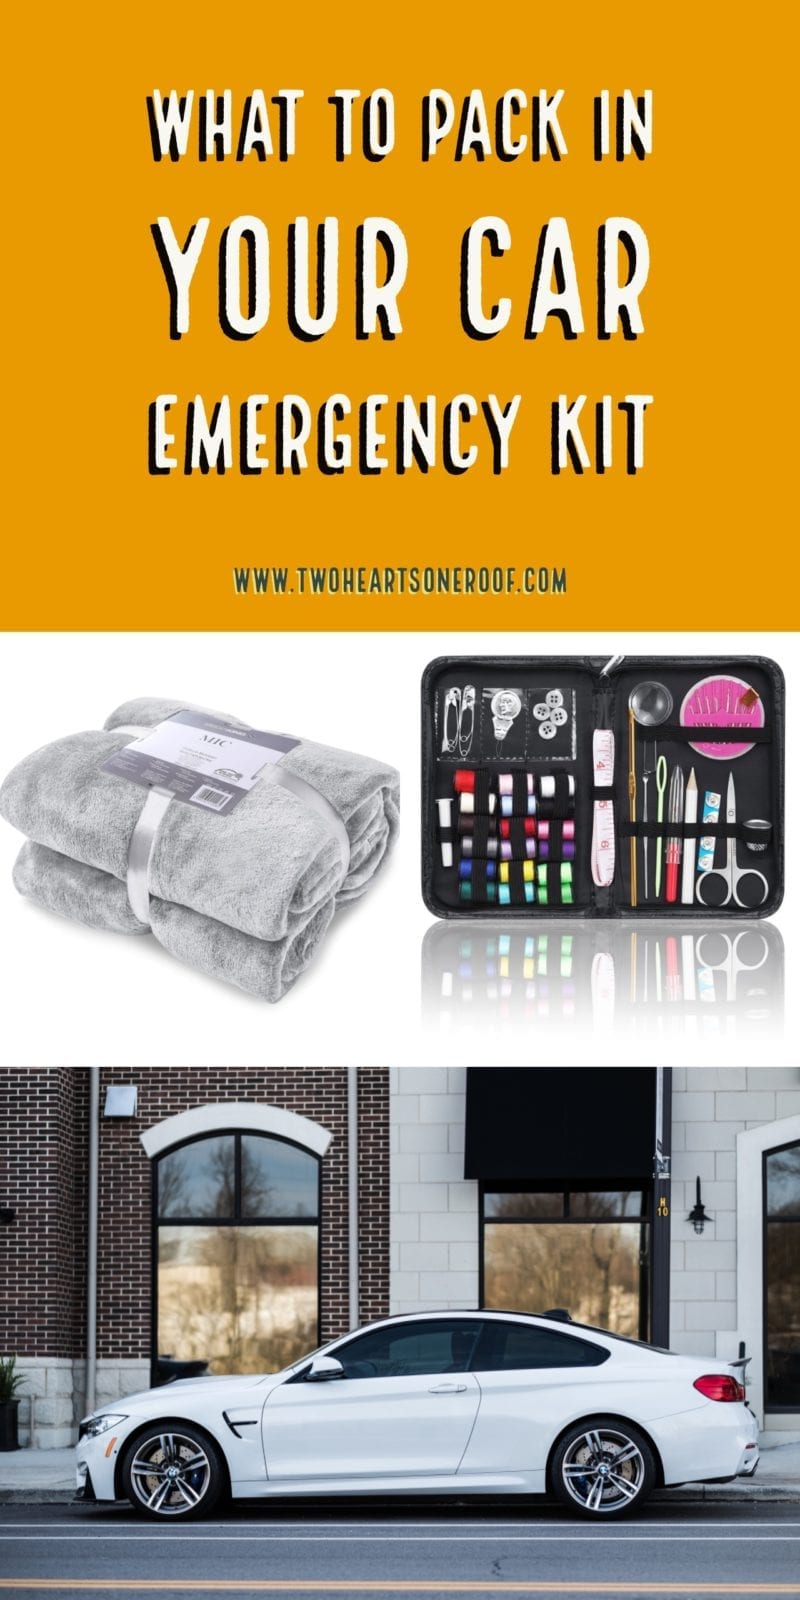 What to Pack in Your Car Emergency Kit